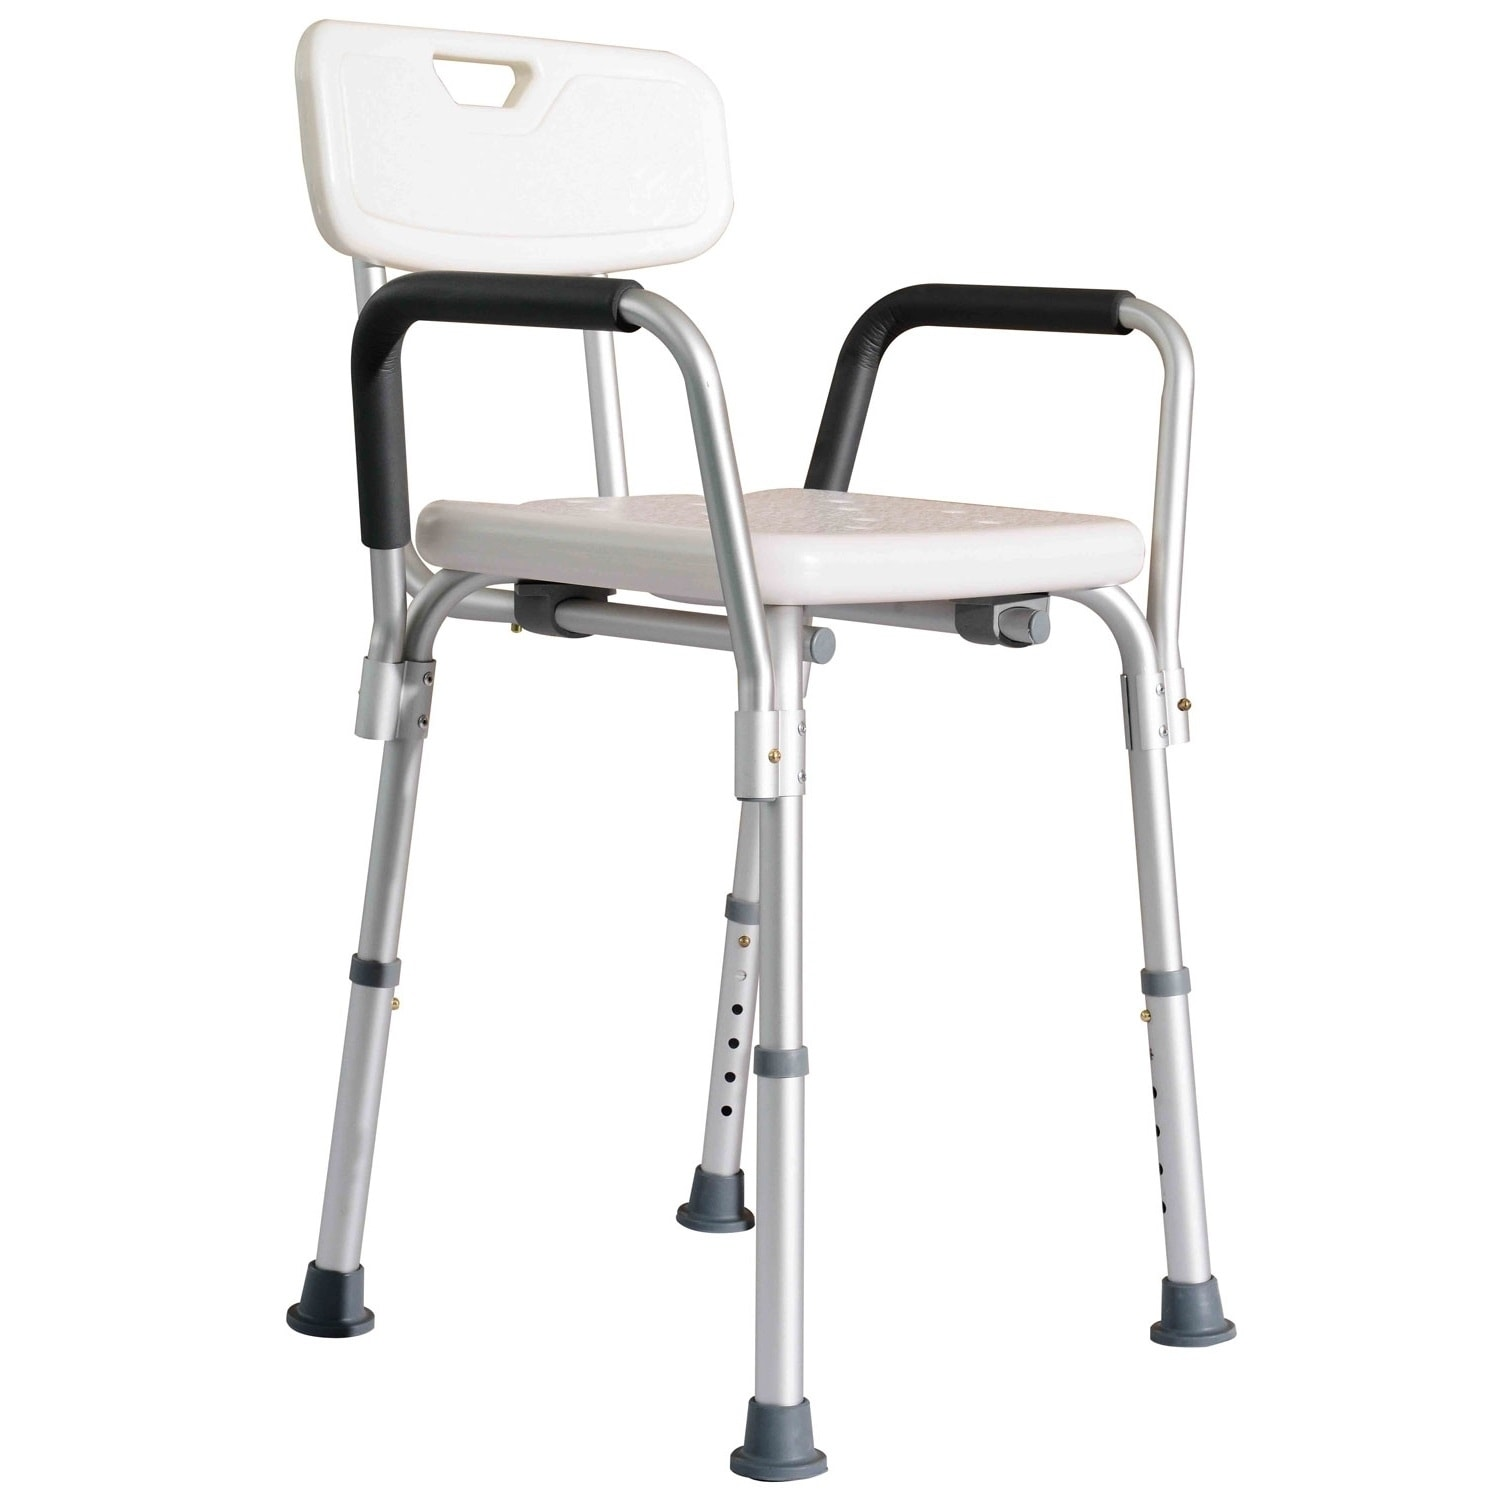 Homcom Adjustable Medical Shower Chair W Arms And Backrest